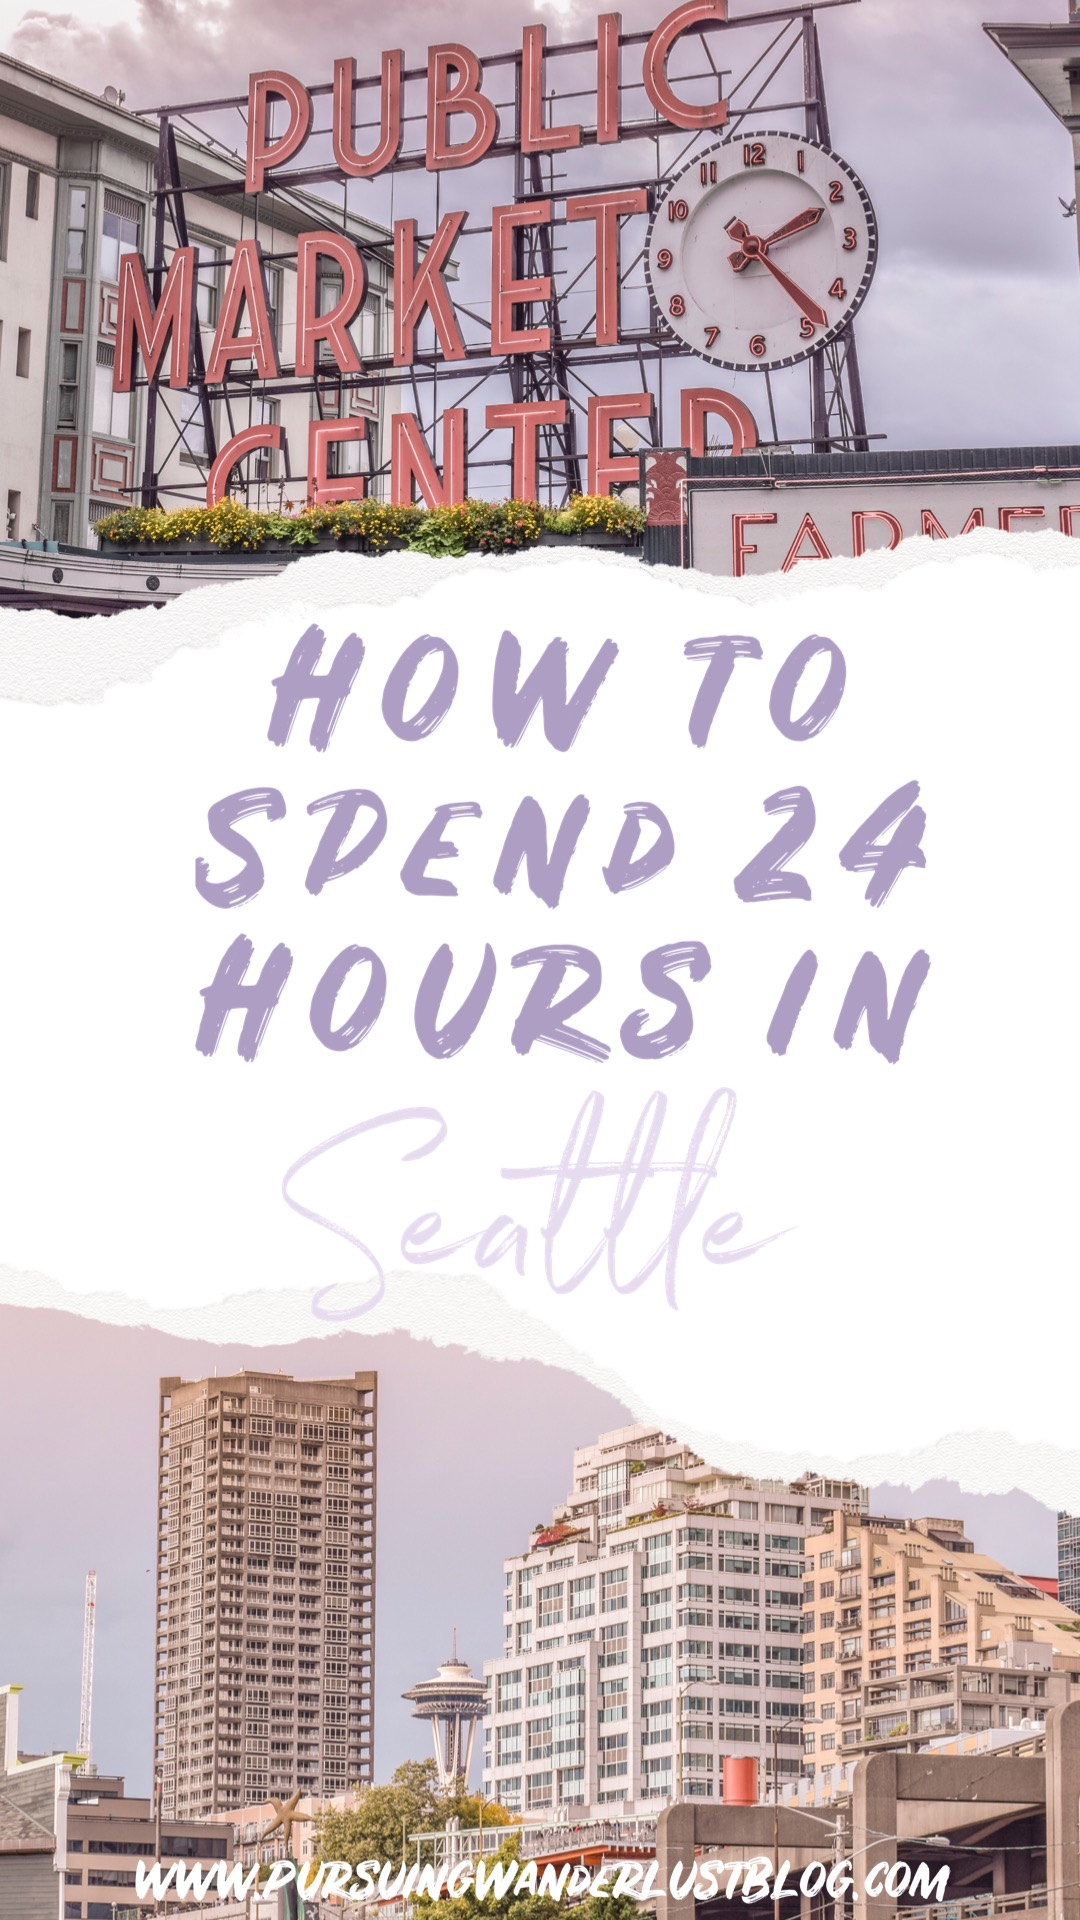 24 HOURS IN SEATTLE